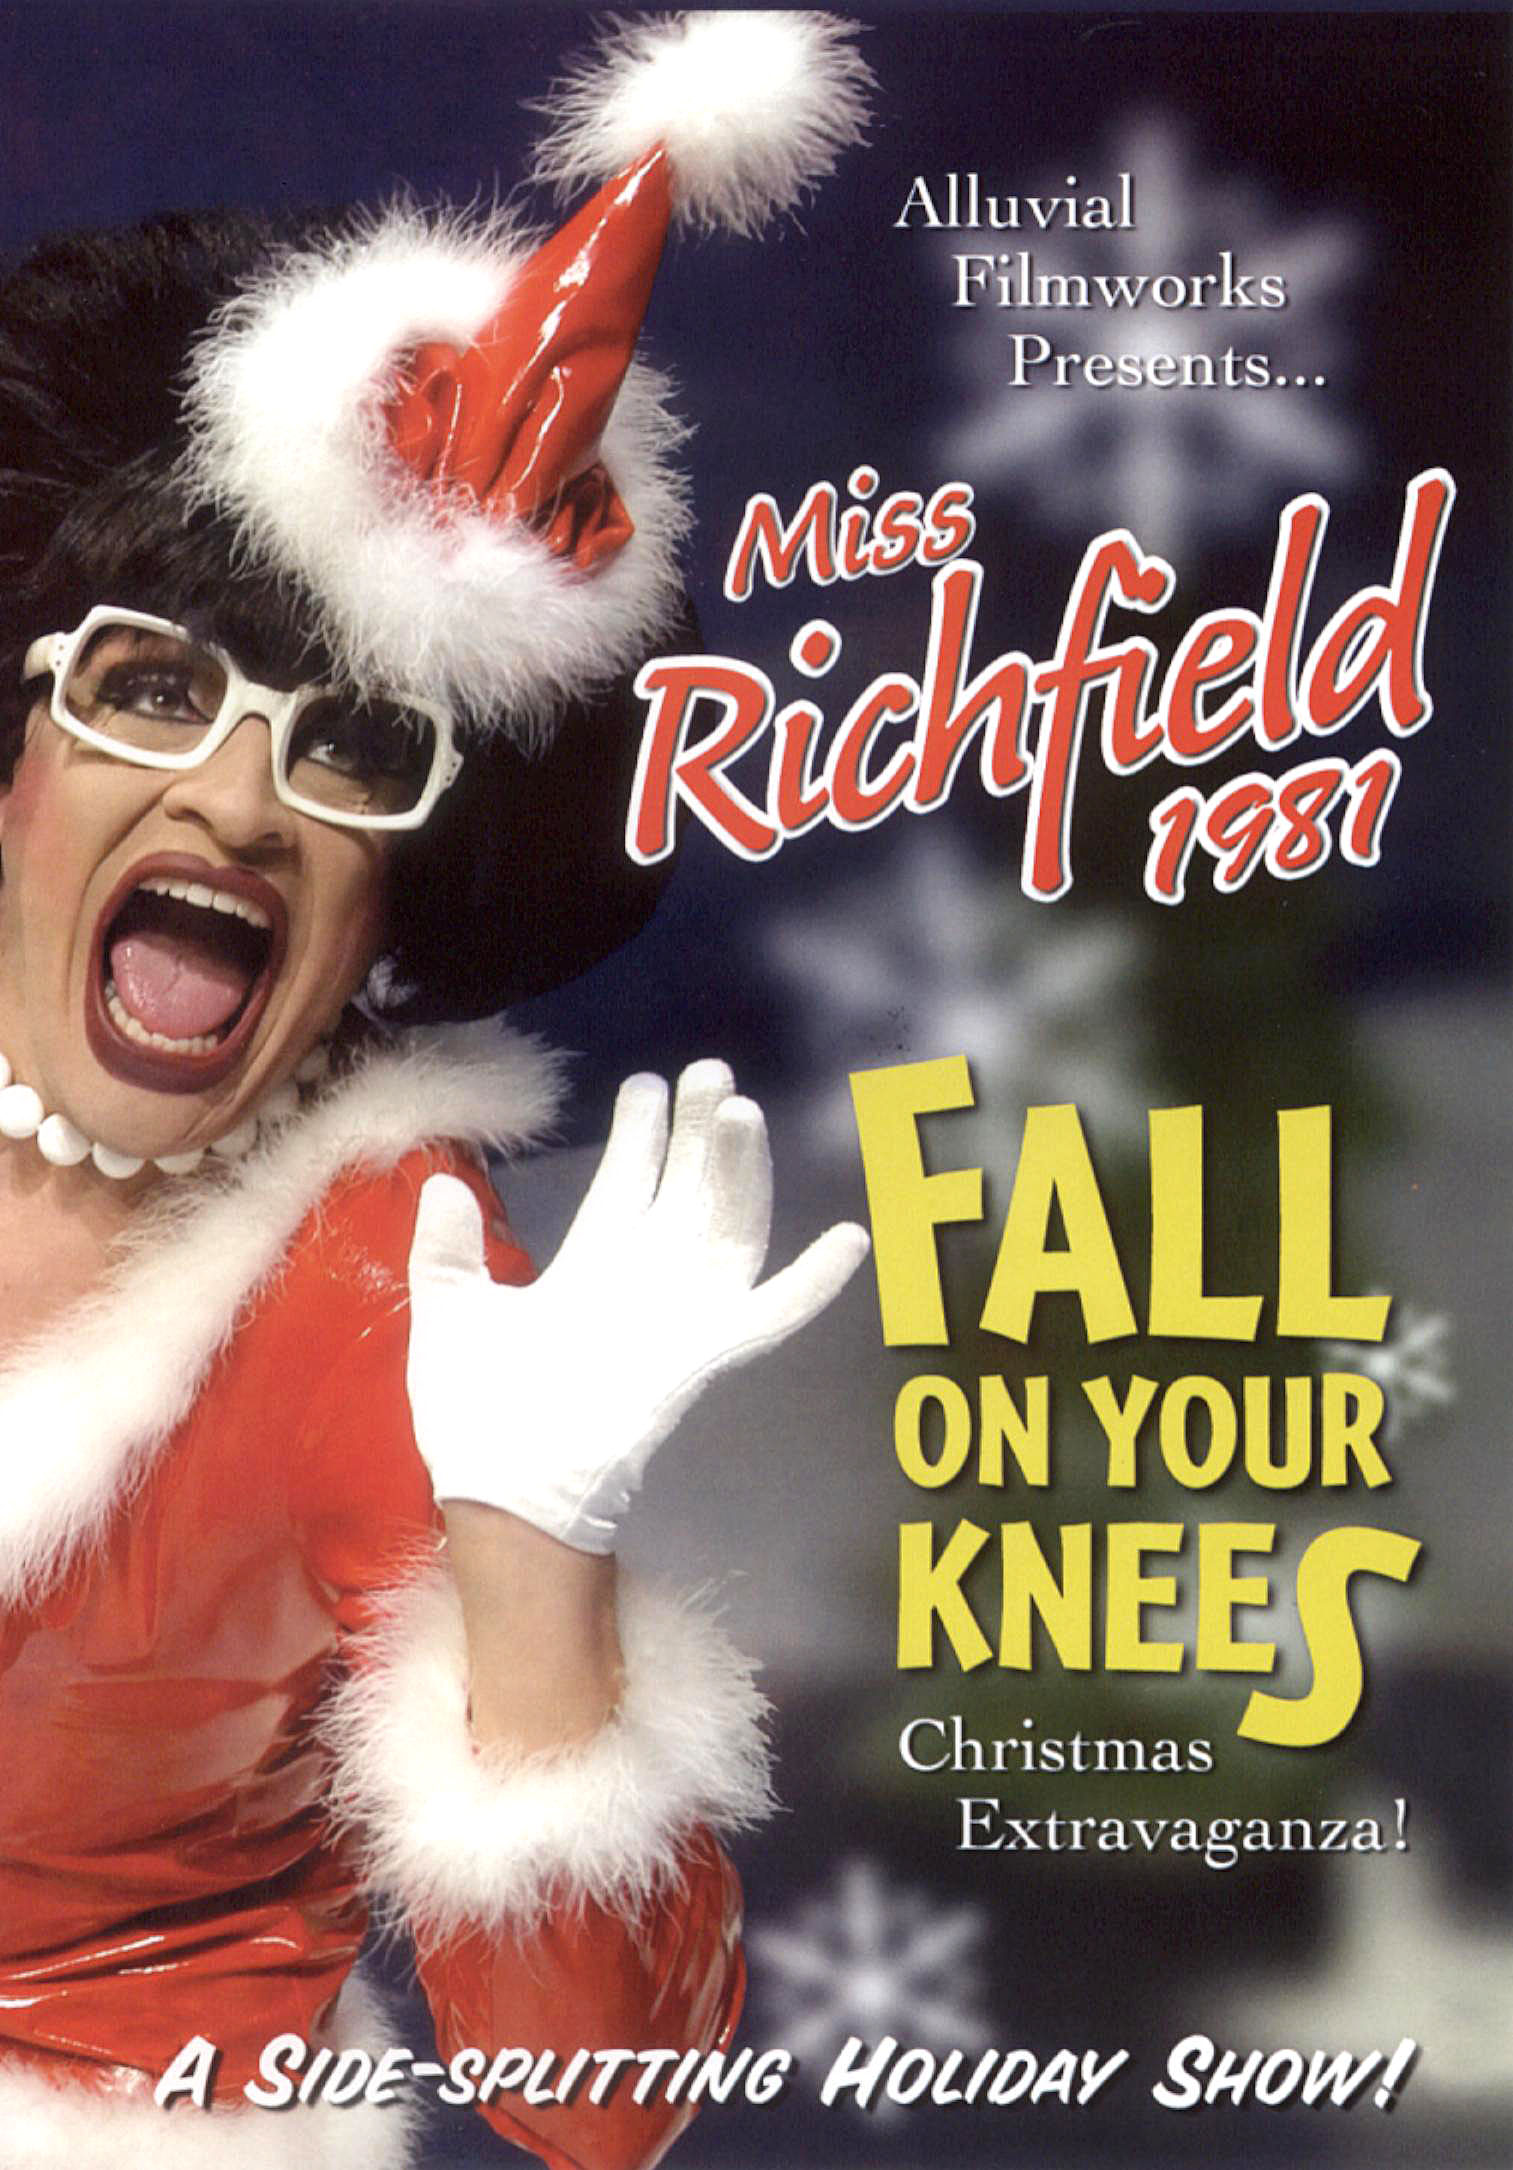 Miss Richfield 1981: Fall On Your Knees - Christmas Extravaganza